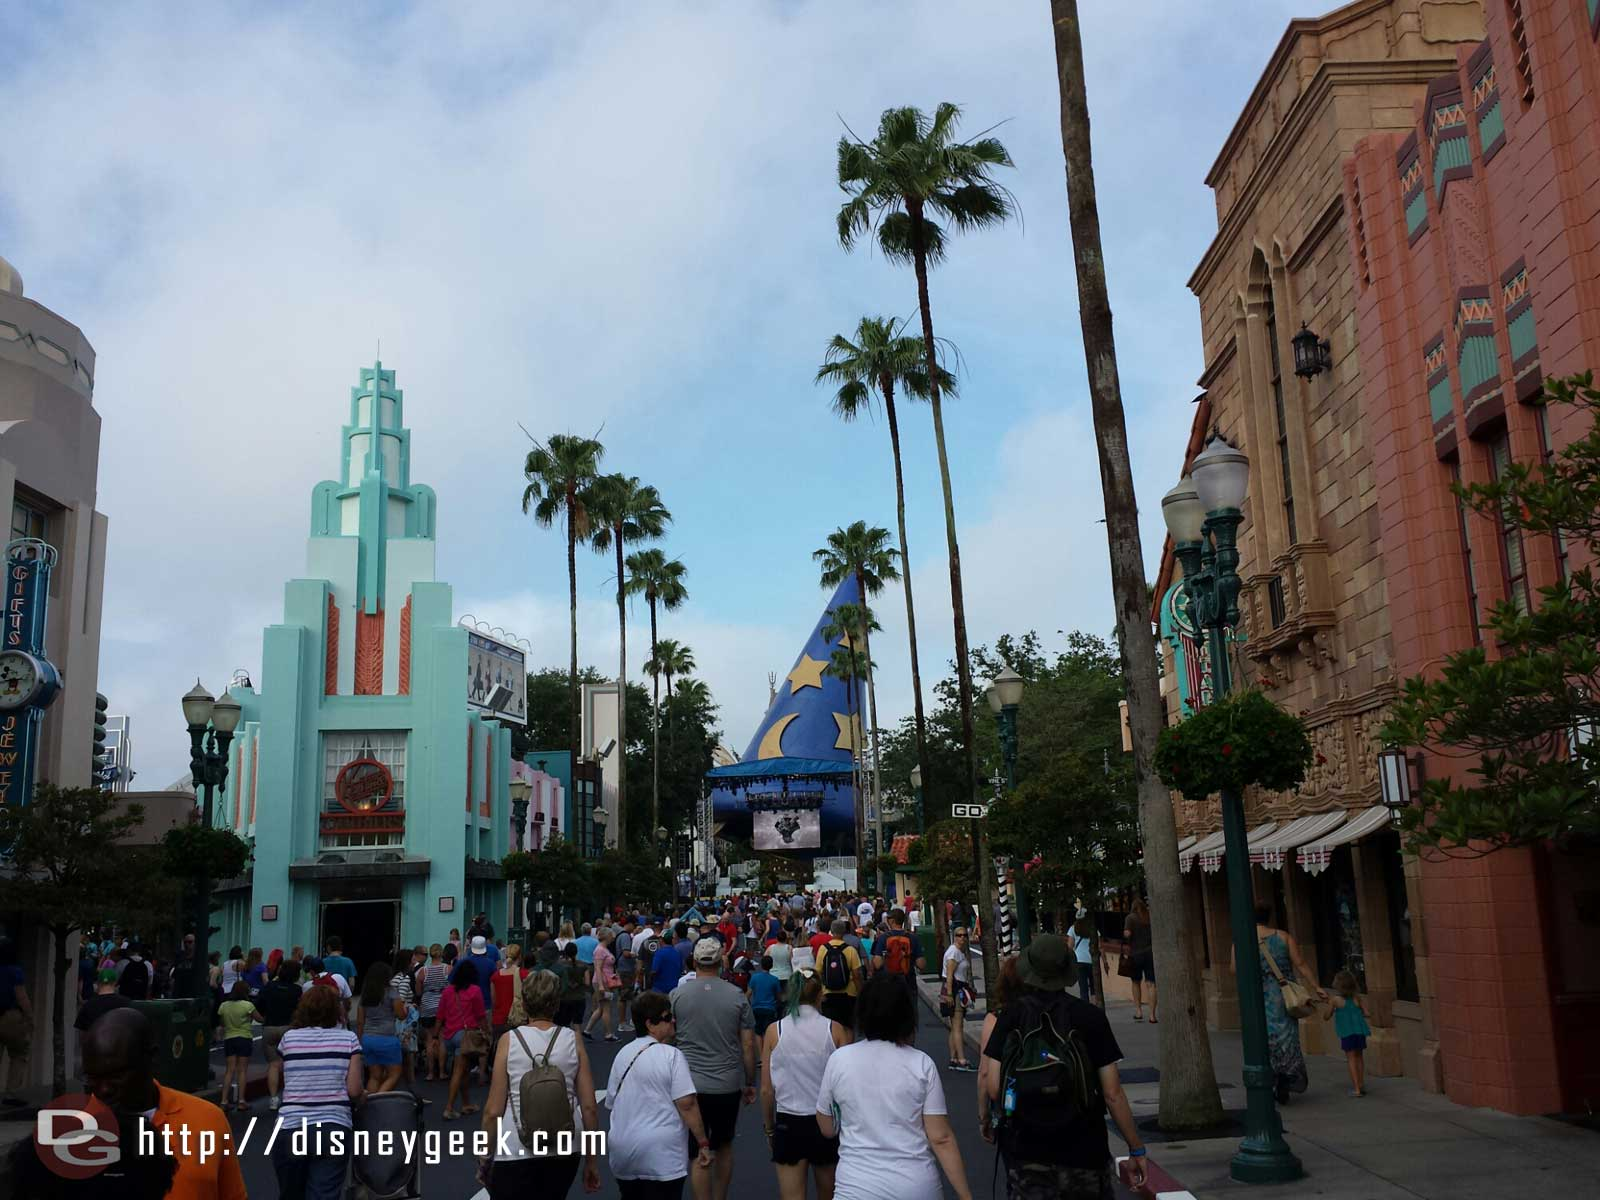 Hollywood Blvd this morning at Disney's Hollywood Studios